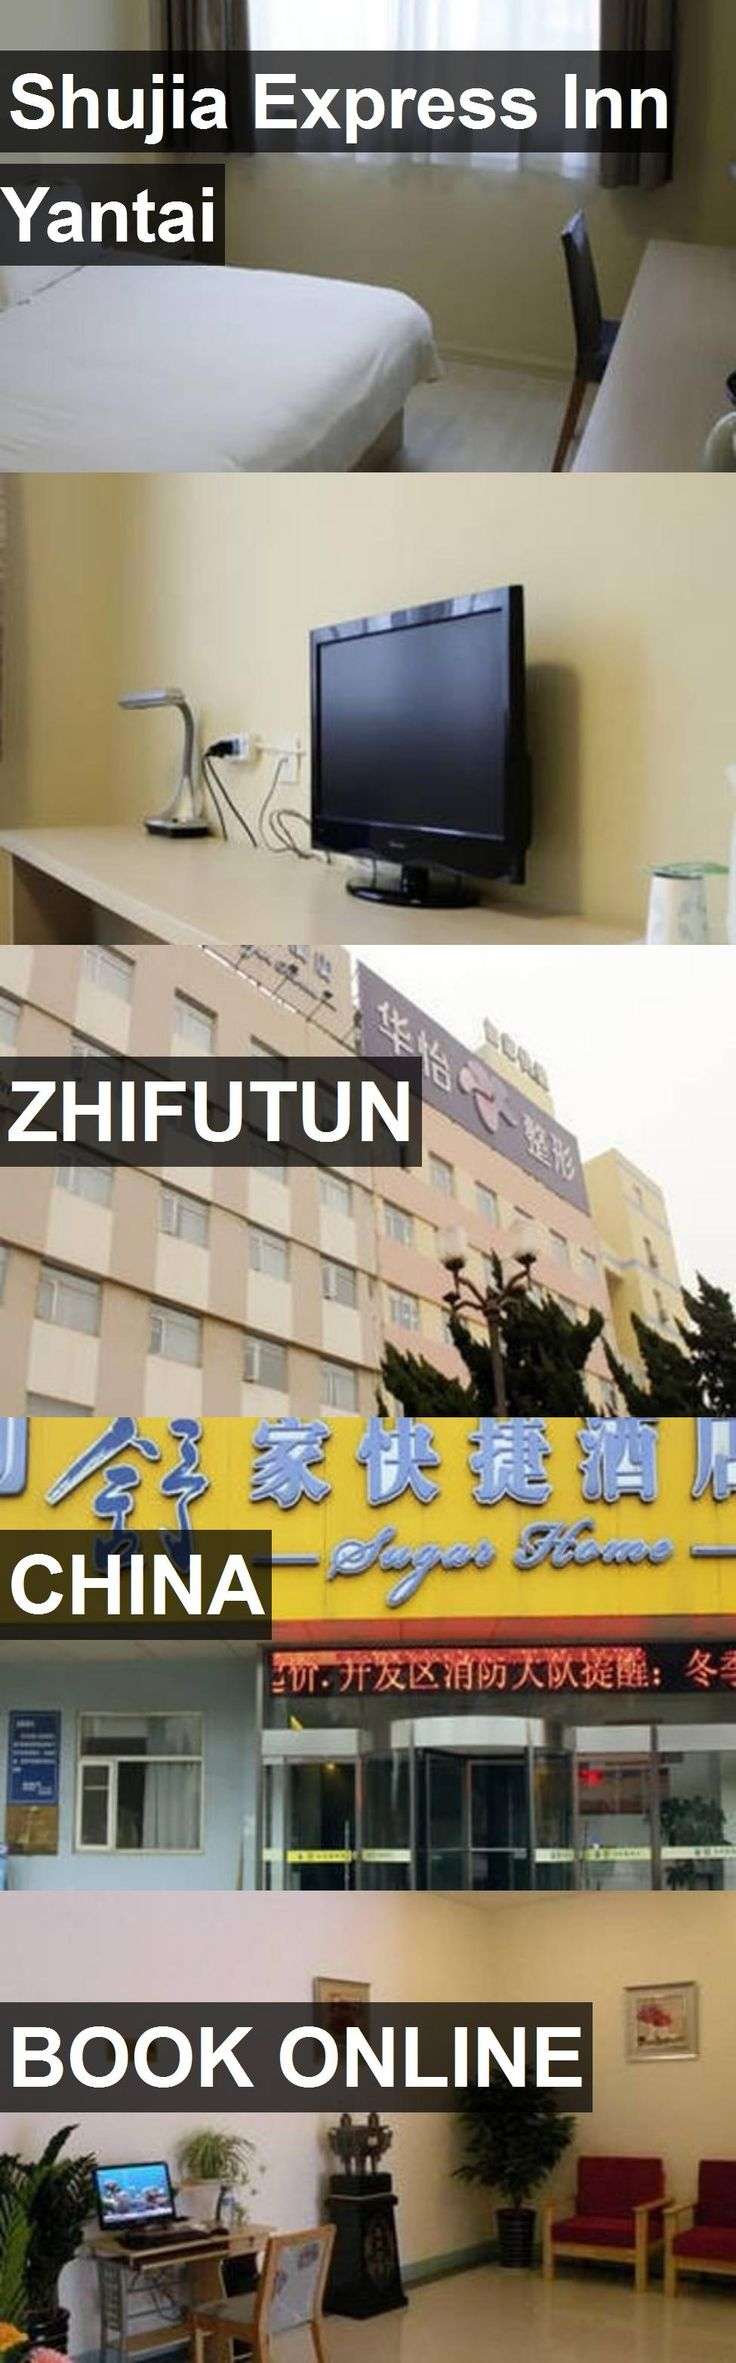 Hotel Shujia Express Inn Yantai in Zhifutun, China. For more information, photos, reviews and best prices please follow the link. #China #Zhifutun #travel #vacation #hotel